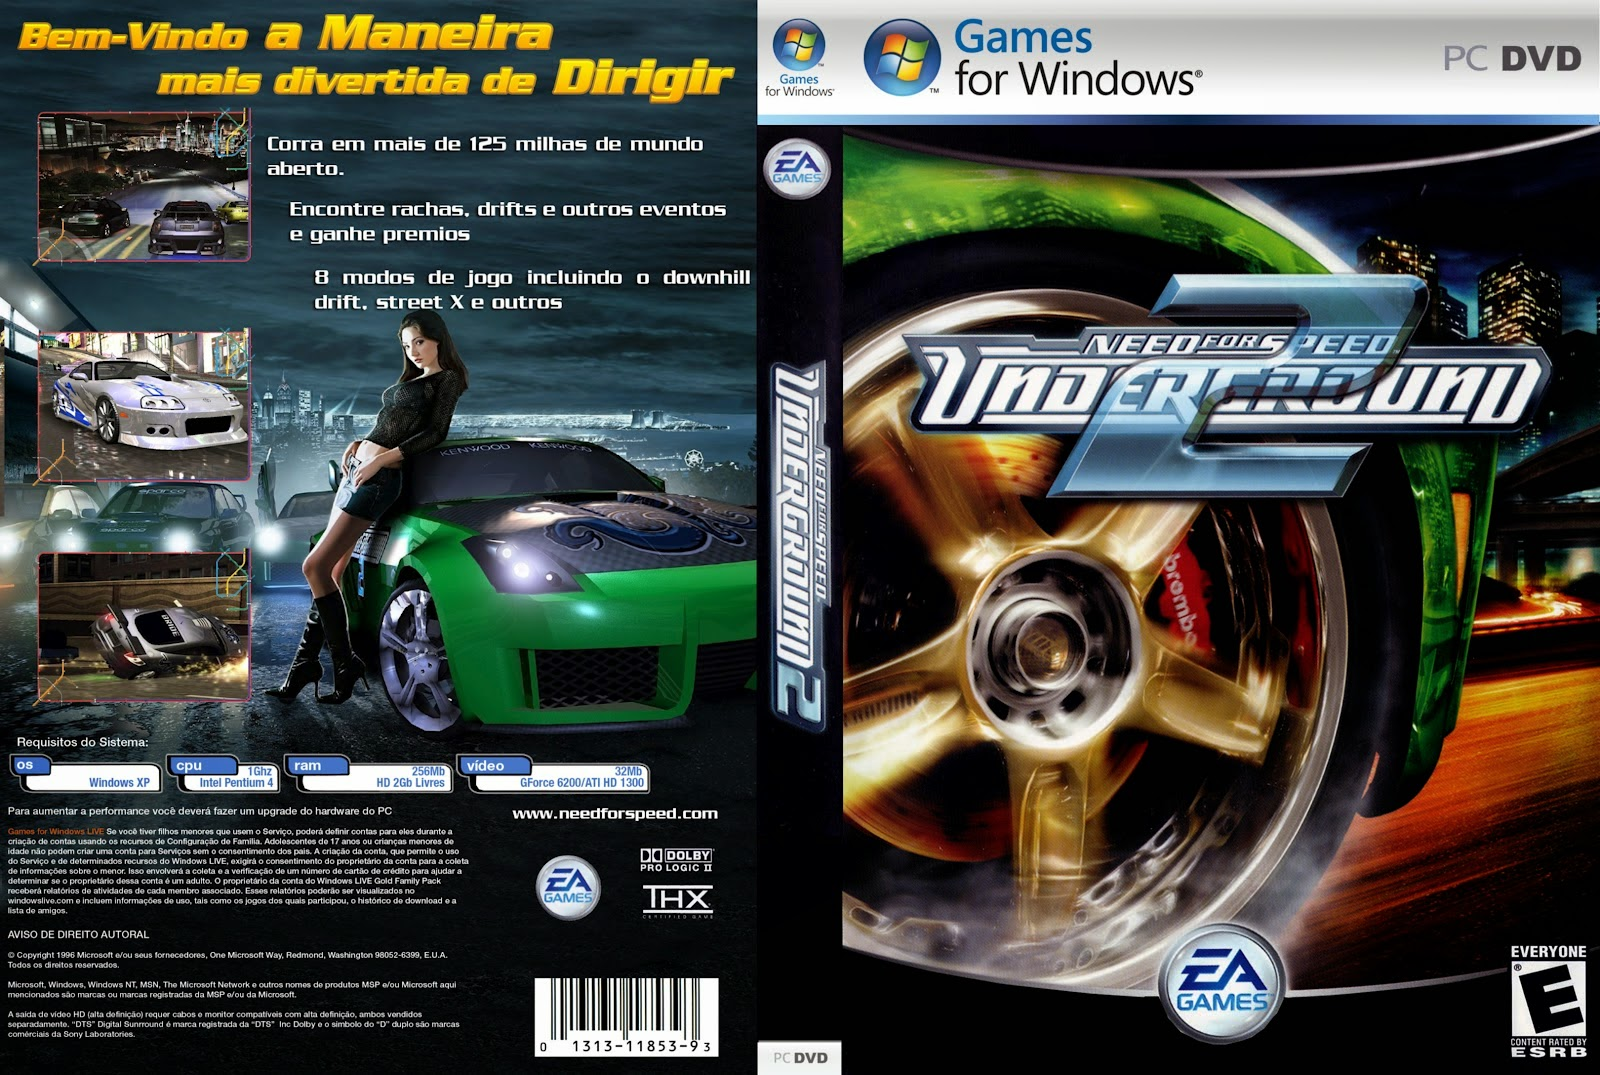 how to get need for speed underground 2 on pc